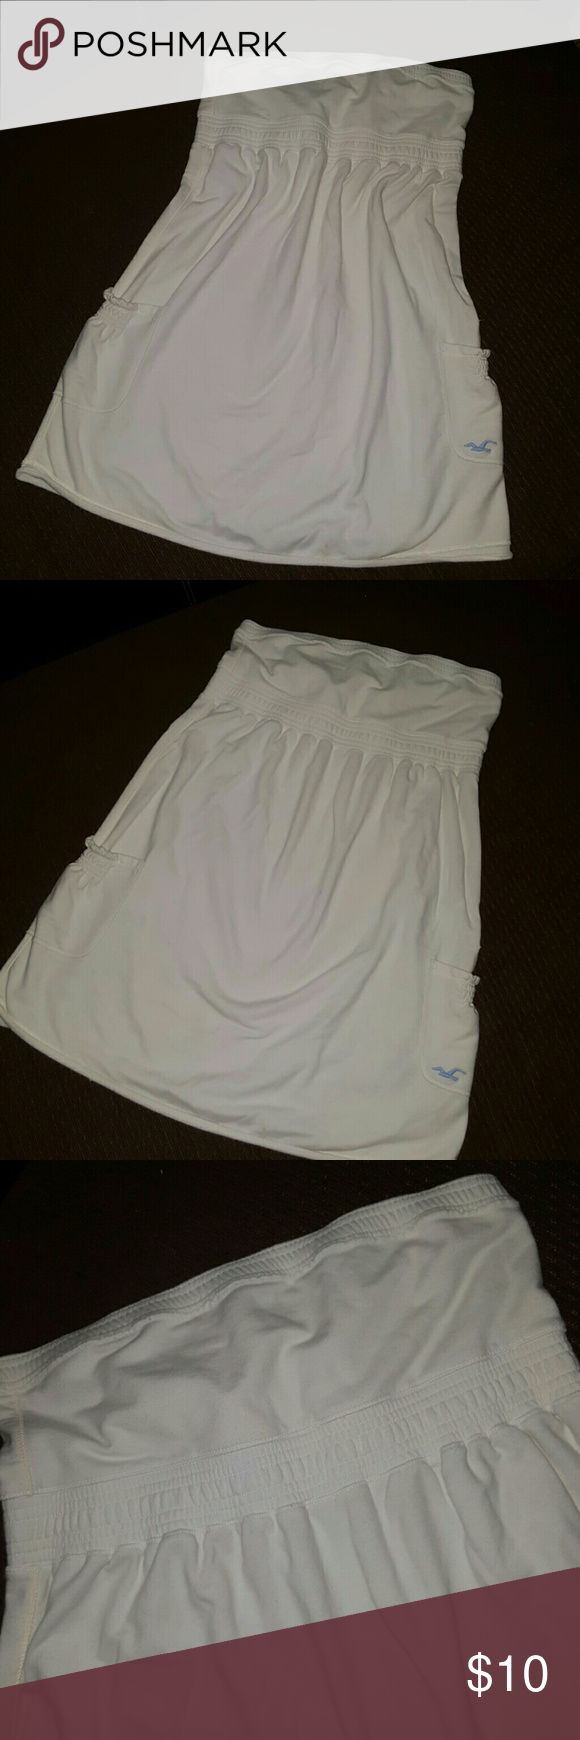 Hollister Tube top dress size Medium Hollister tube top dress size Medium  Good for spring and? summer No rips  No holes No smell Stain at the lower back In great condition  Make an offer Hollister Dresses Midi